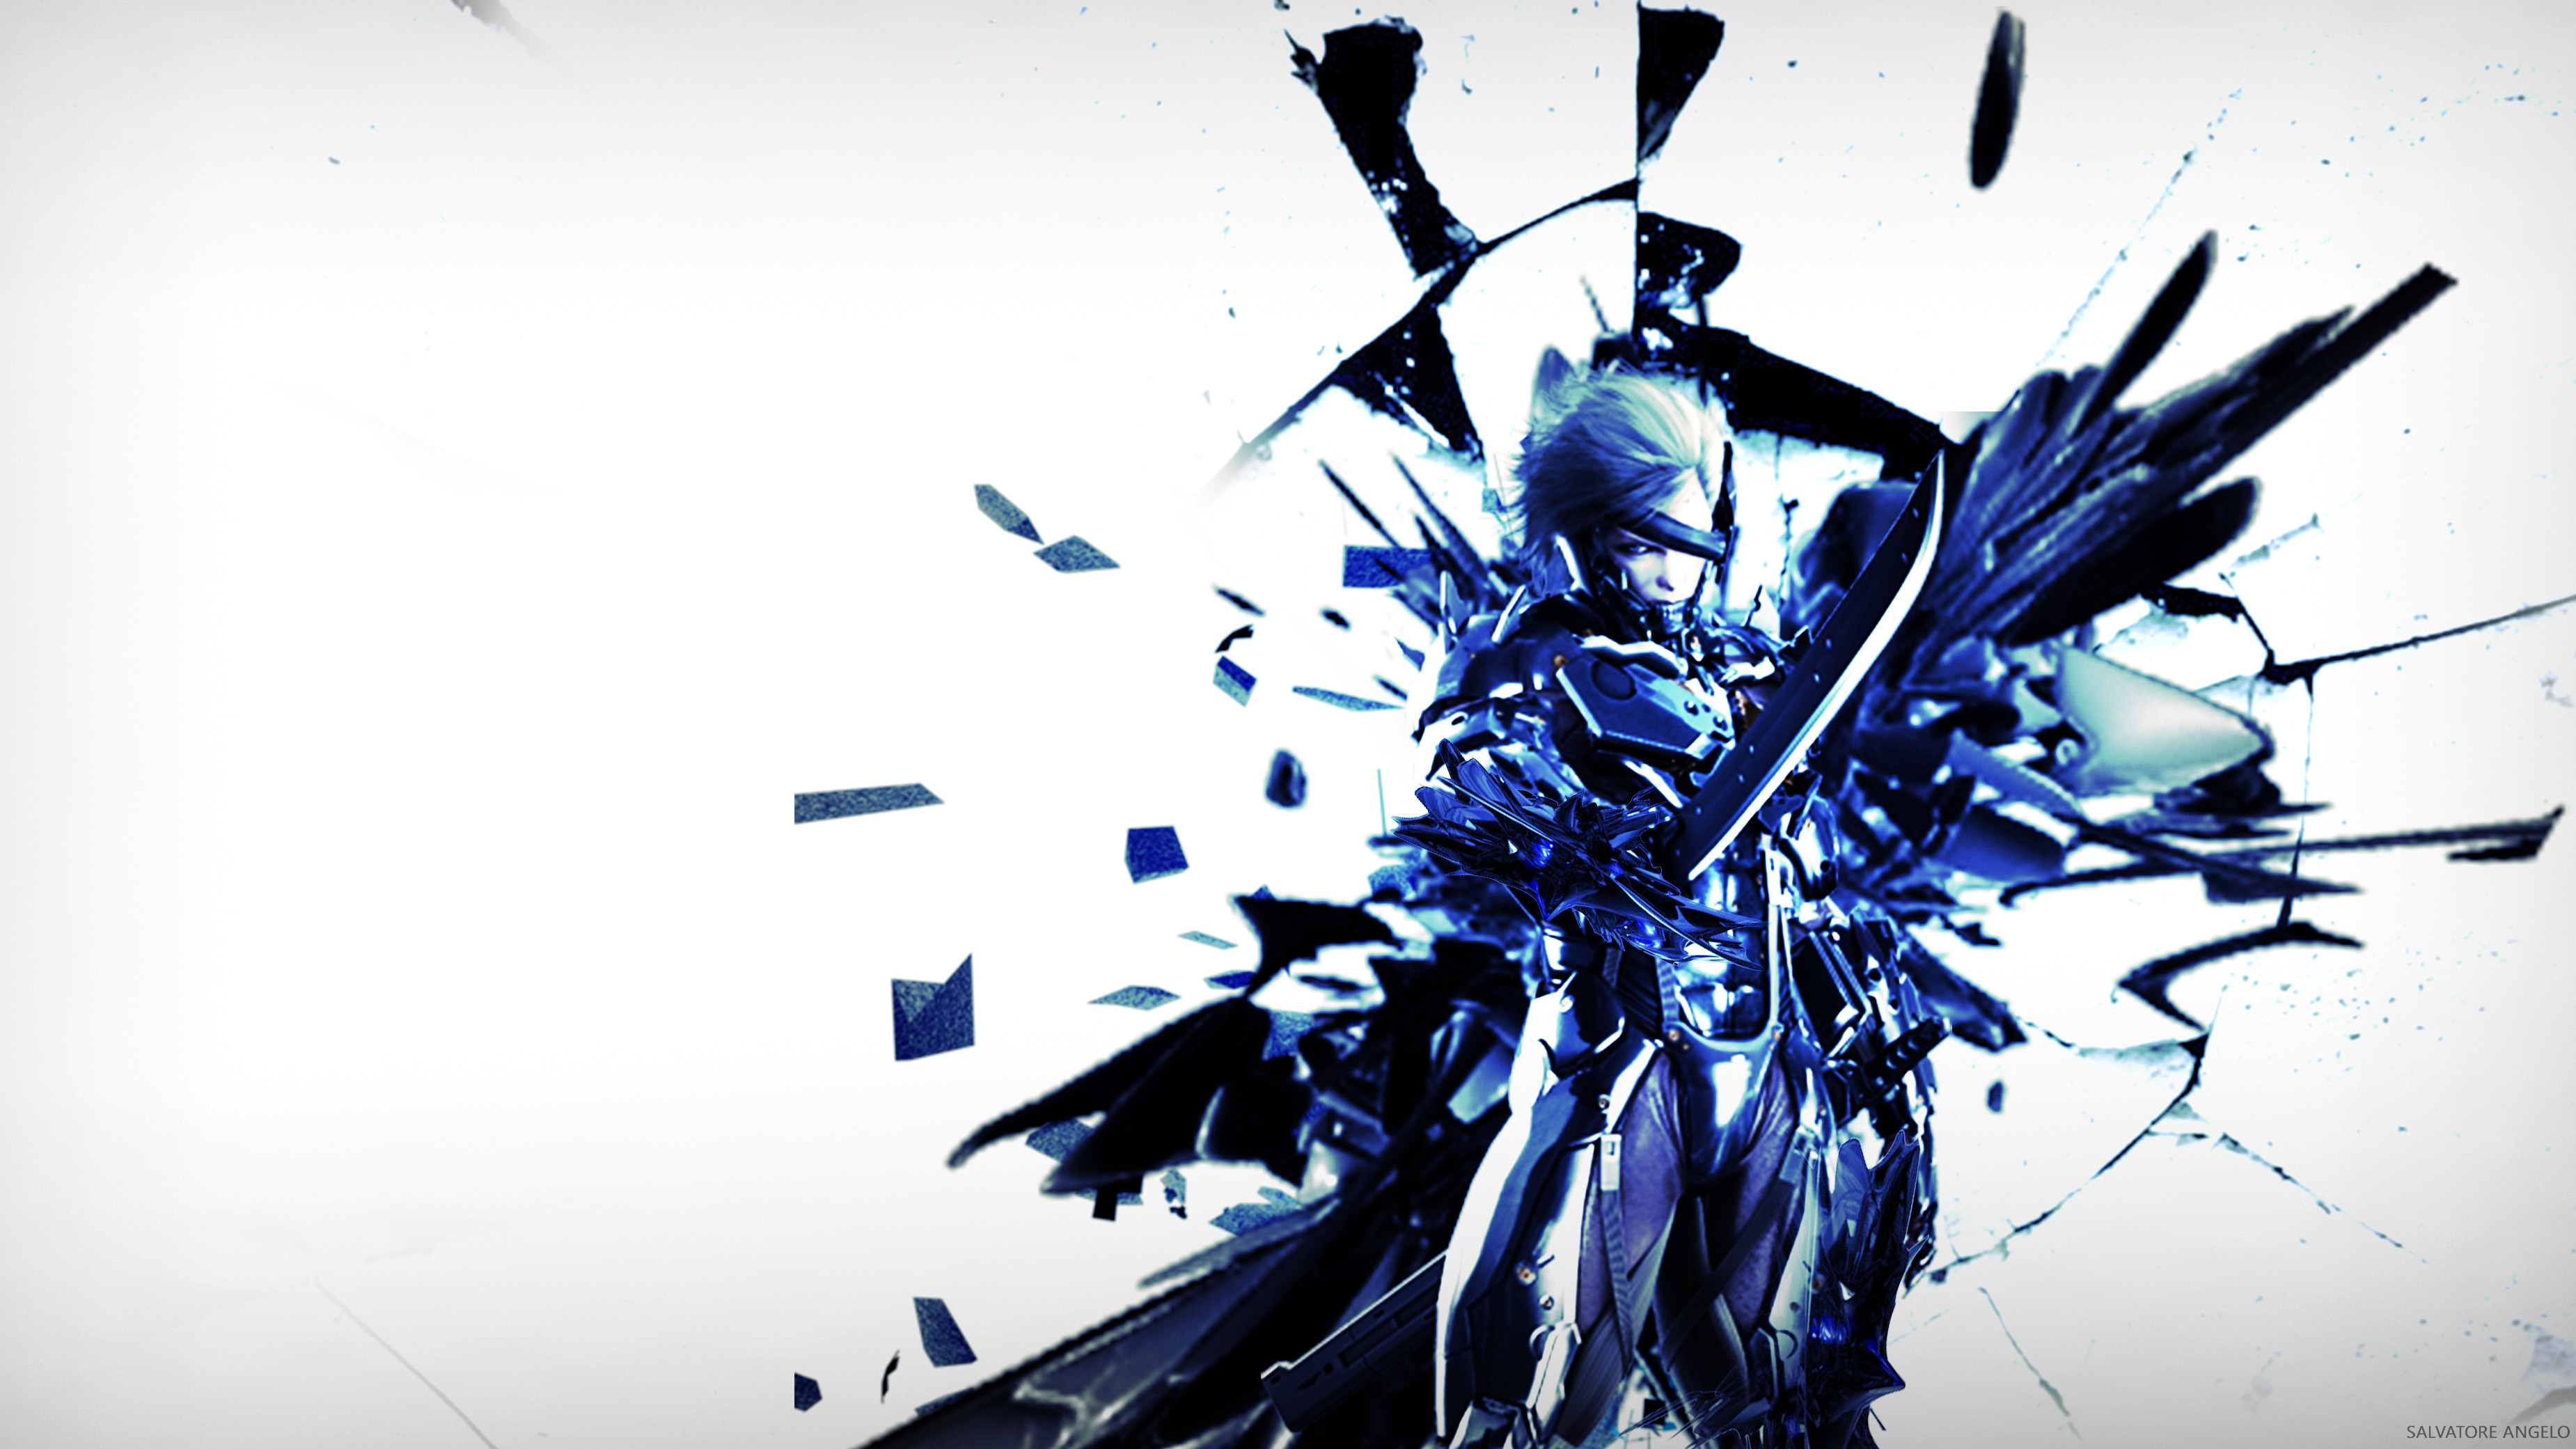 raiden full hd wallpaper and background image | 3700x2081 | id:564575